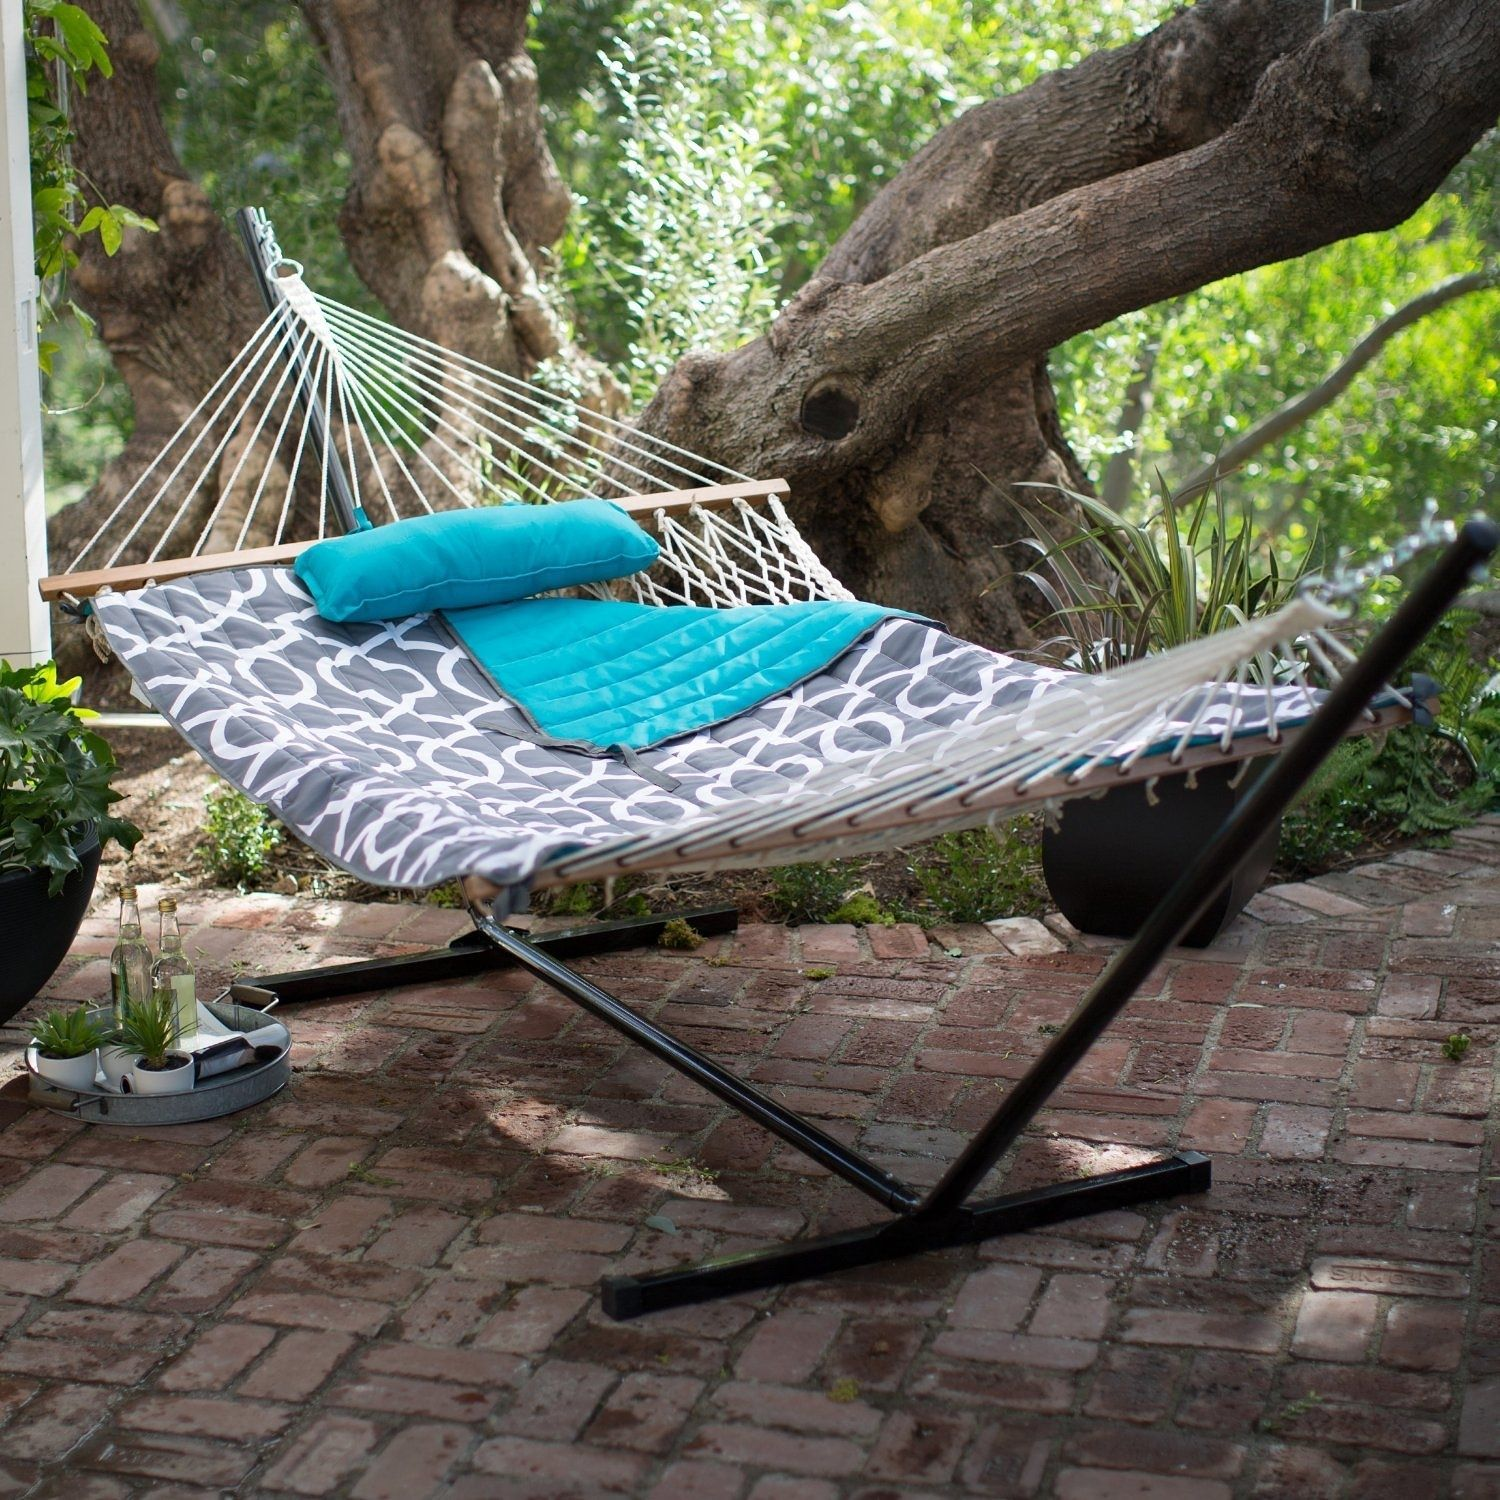 algoma 11 ft  cotton rope hammock with metal stand deluxe set to support our product algoma 11 ft  cotton rope hammock with metal stand deluxe set to      rh   pinterest